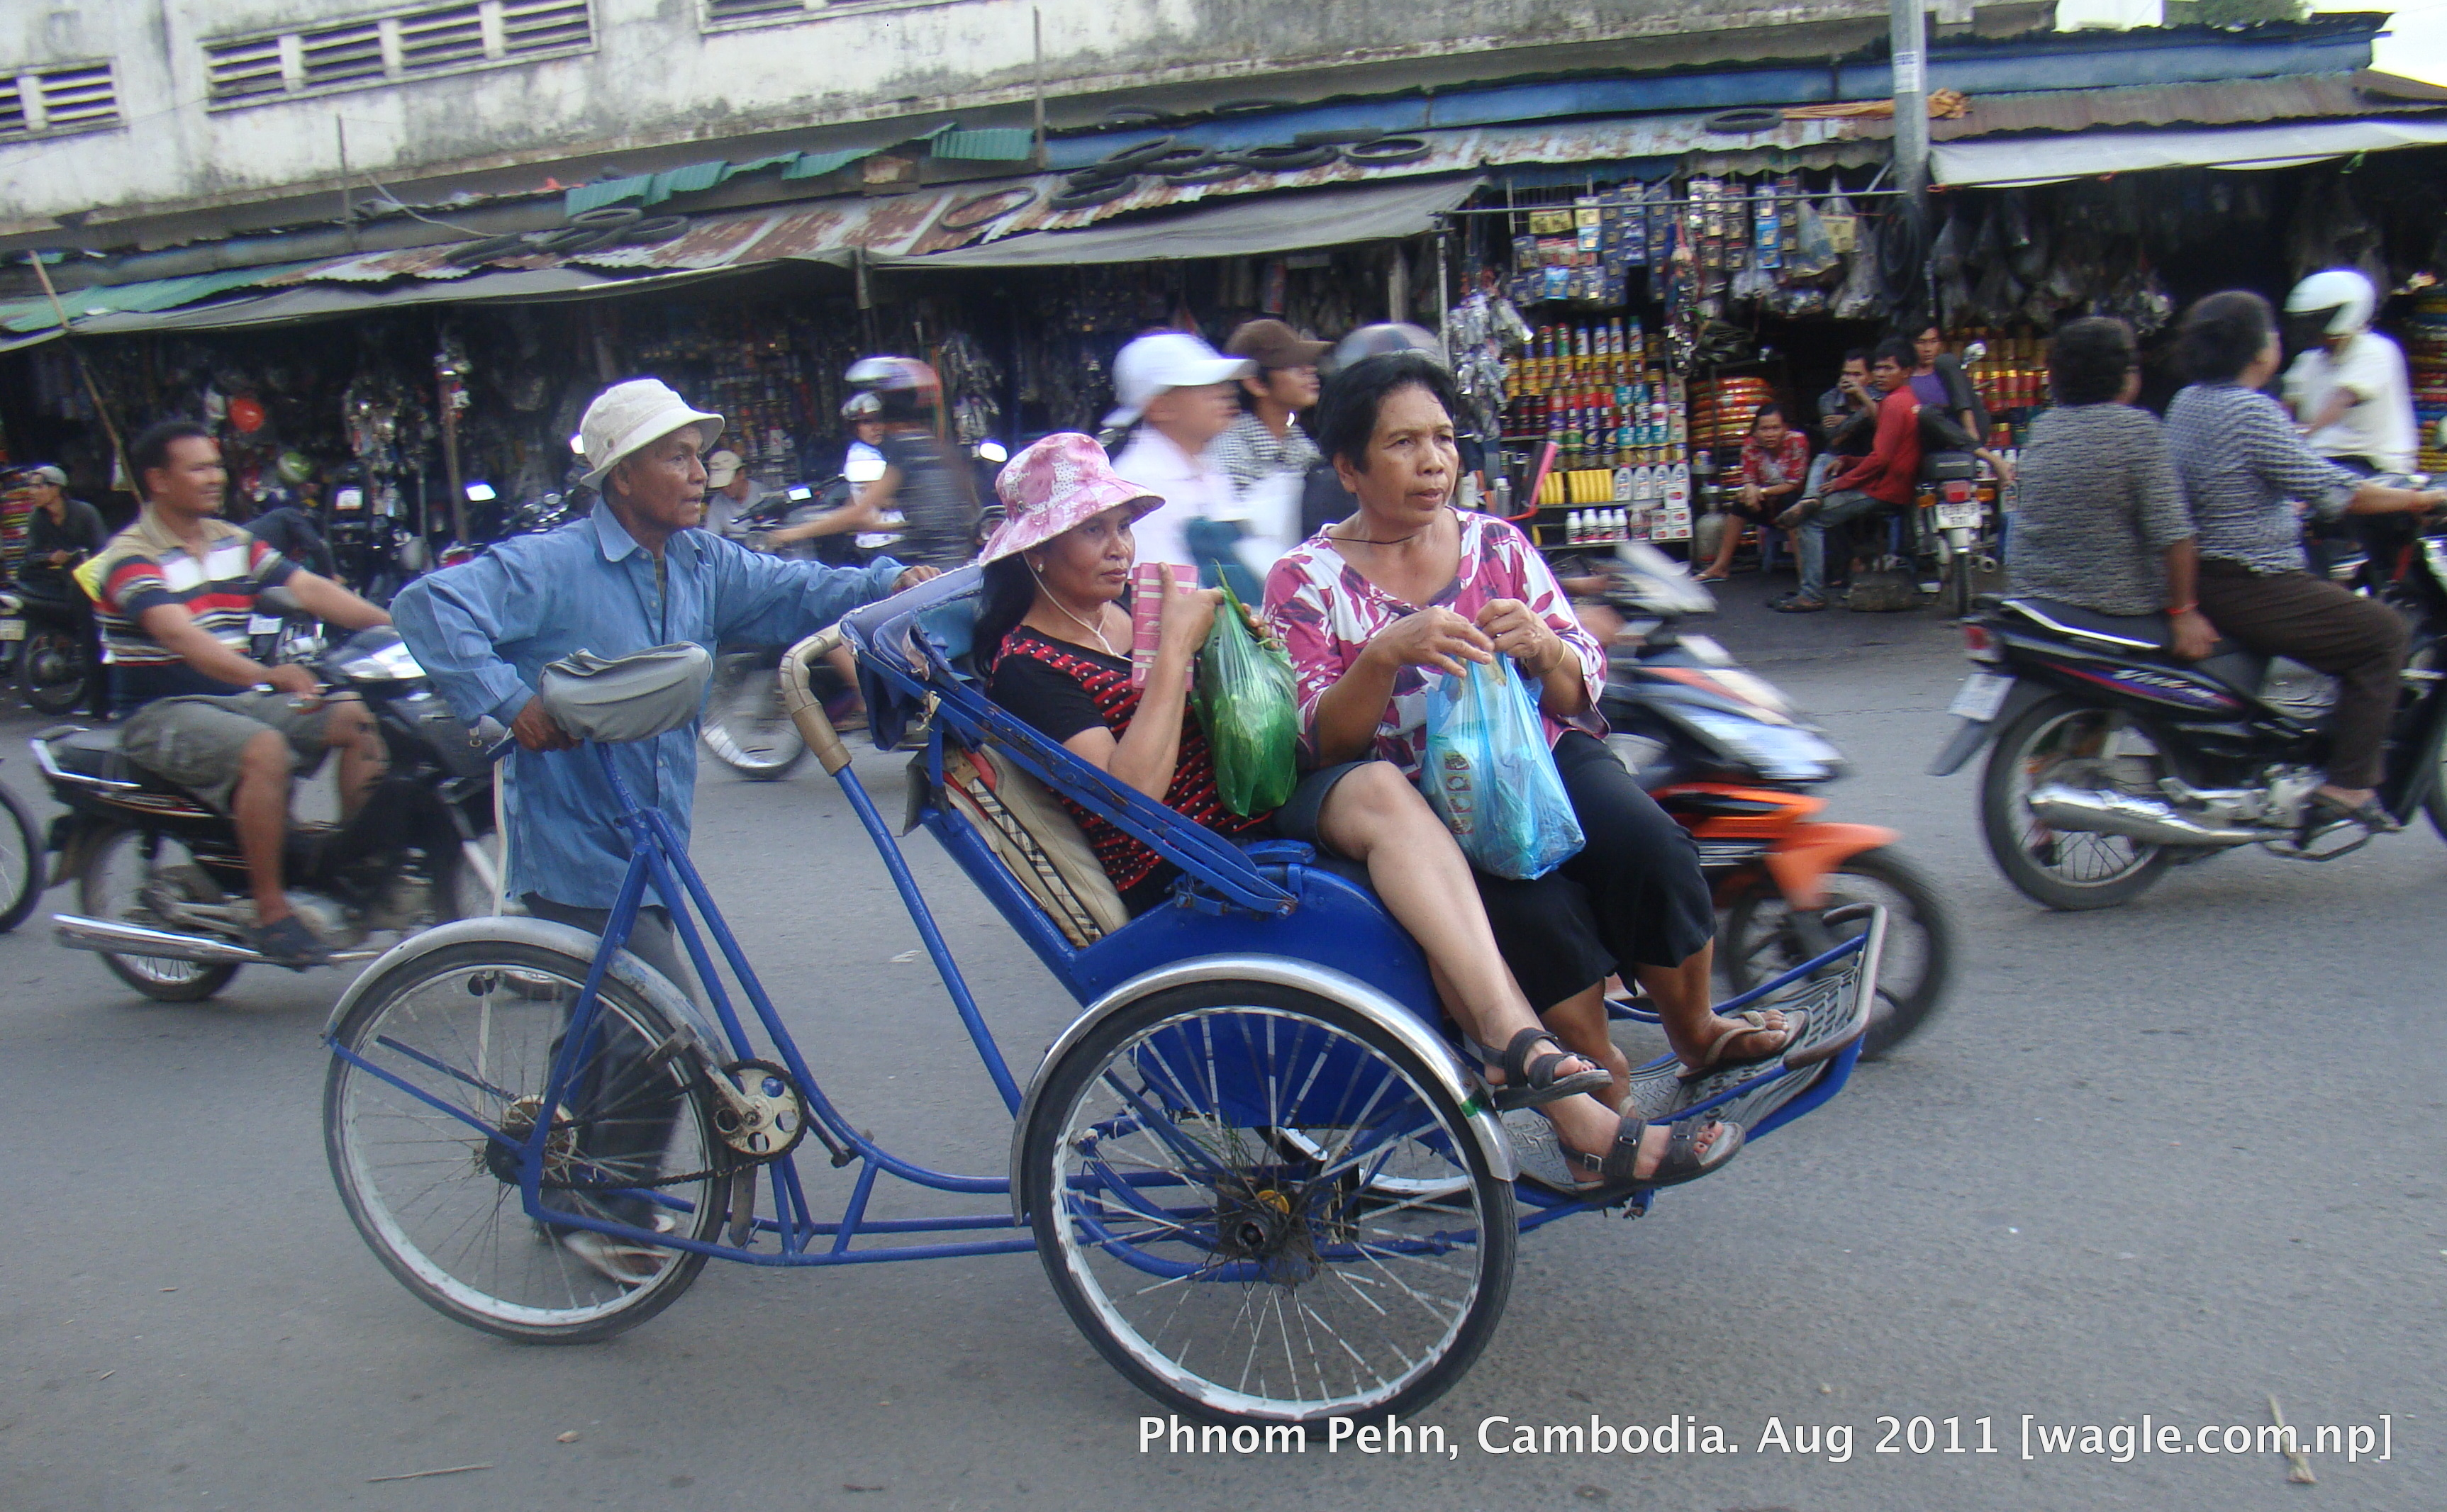 cyclo in phnom penh – Wagle Street Journal